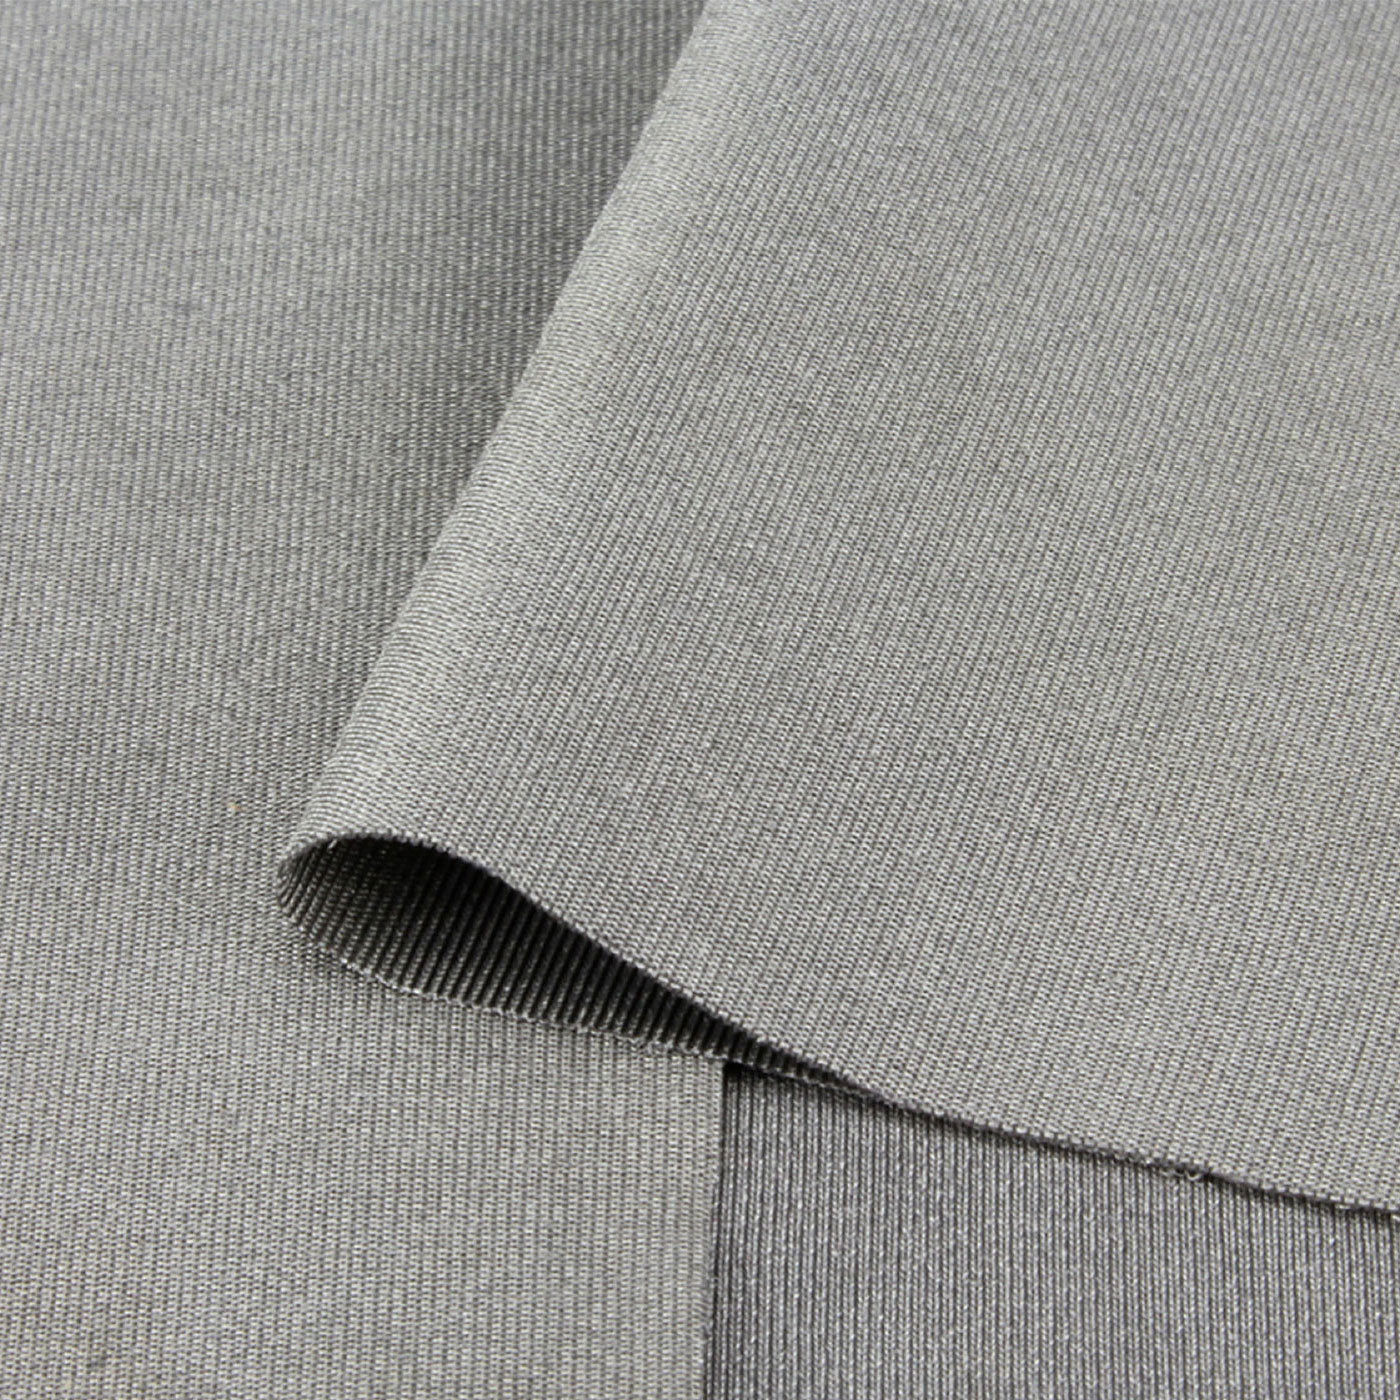 SILVER-ELASTIC Shielding Fabric for High Frequency EMF (per metre)